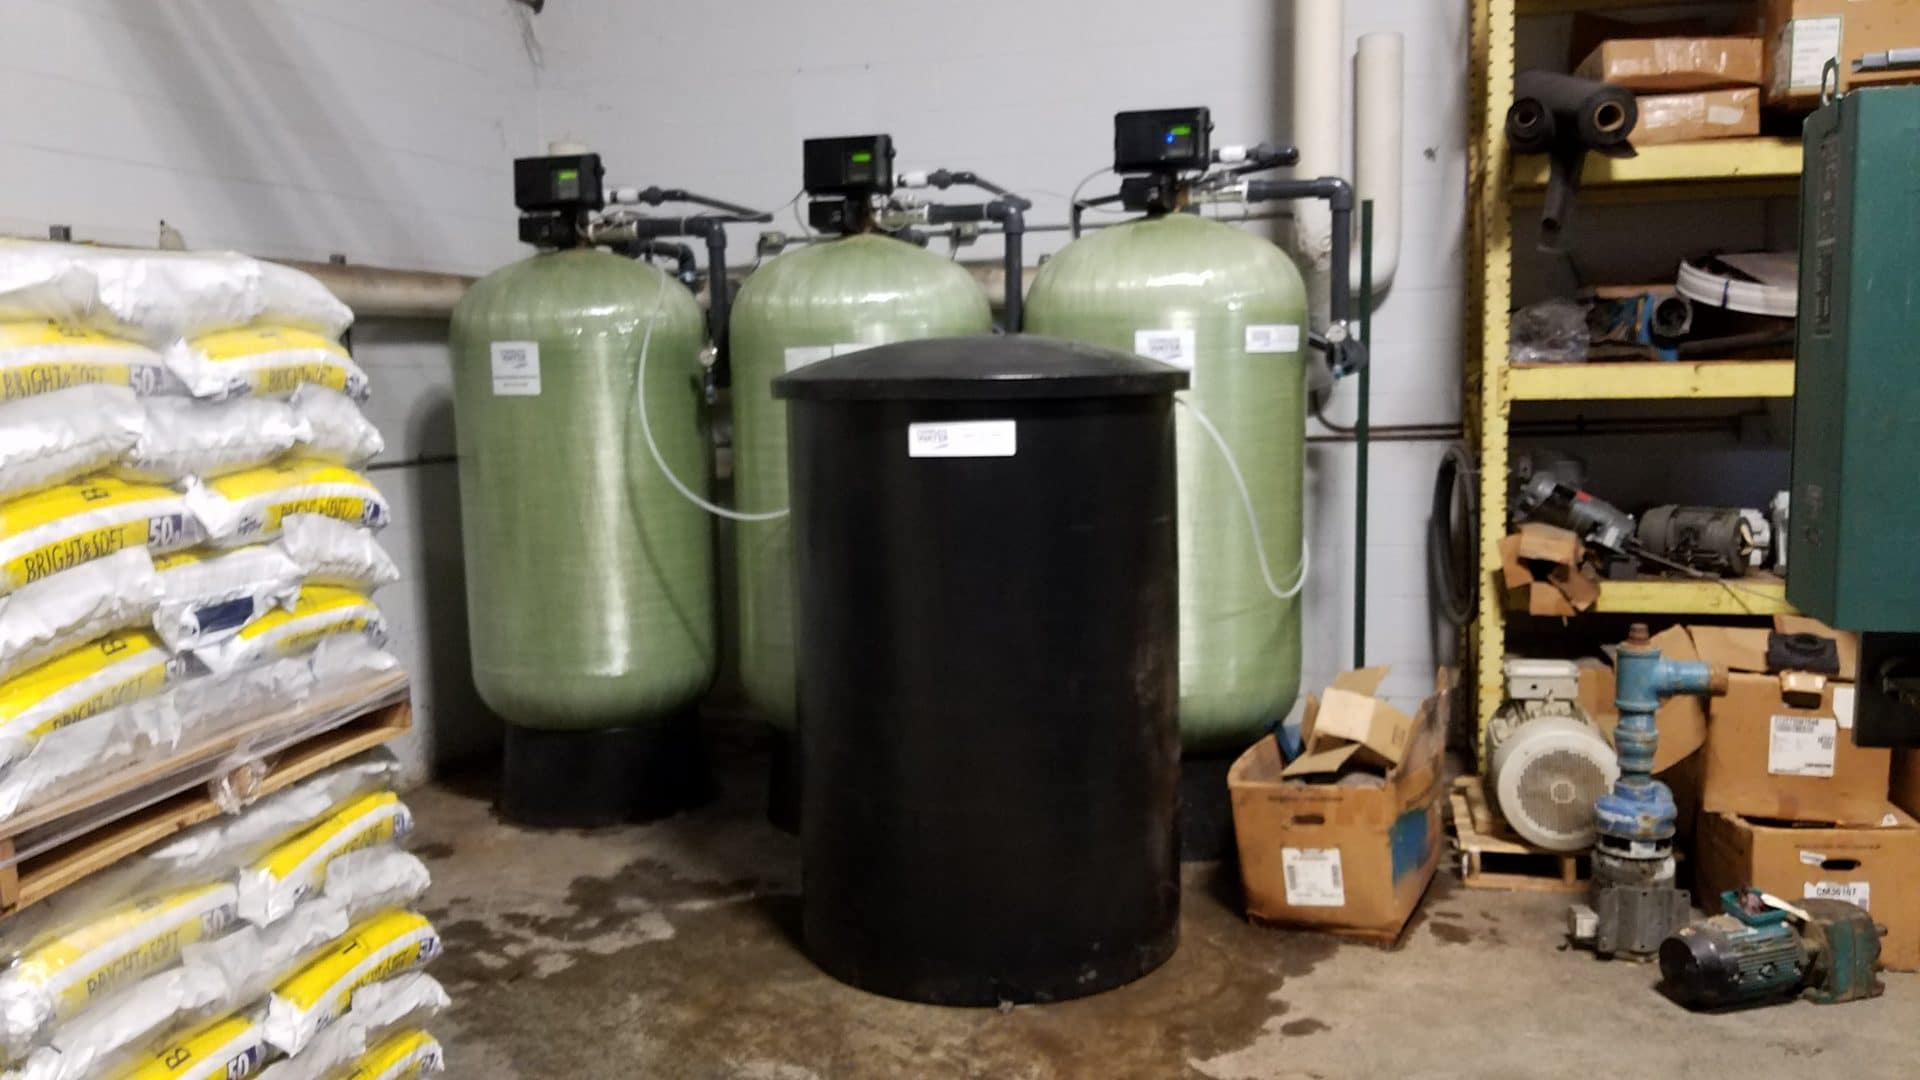 Fleck 2900 Triplex 3200NXT, industrial softener replacement, complete water solutions